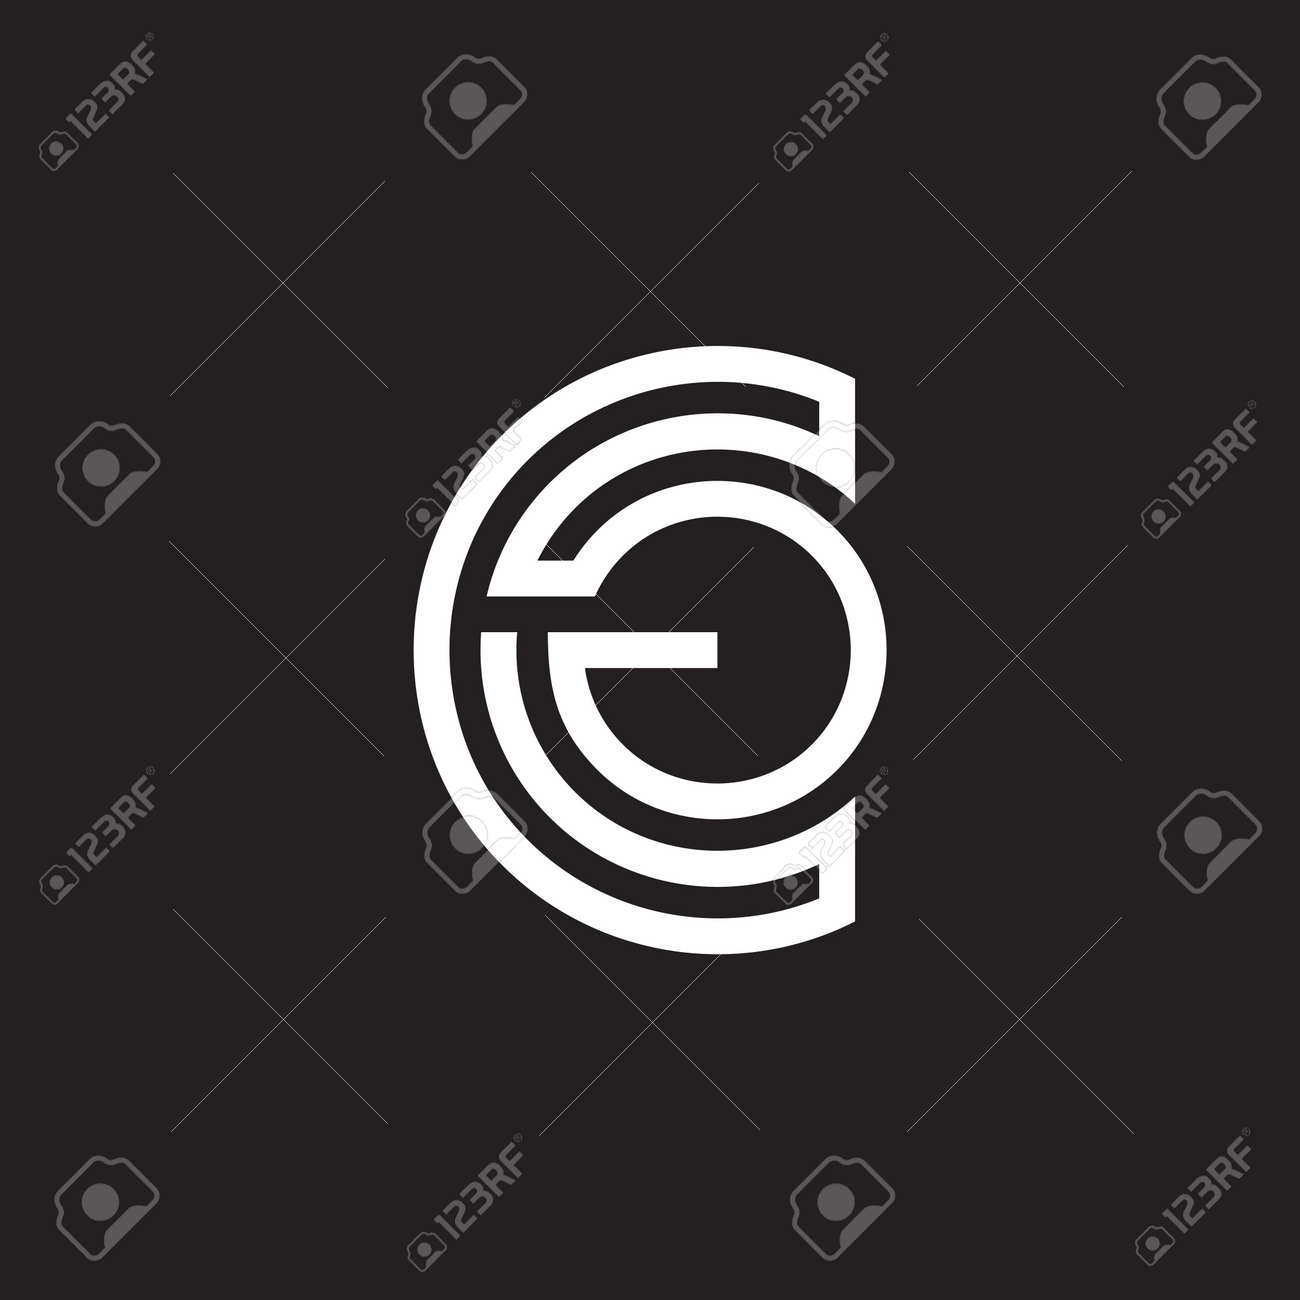 abstract letter cg stripes linear design symbol vector - 153489547